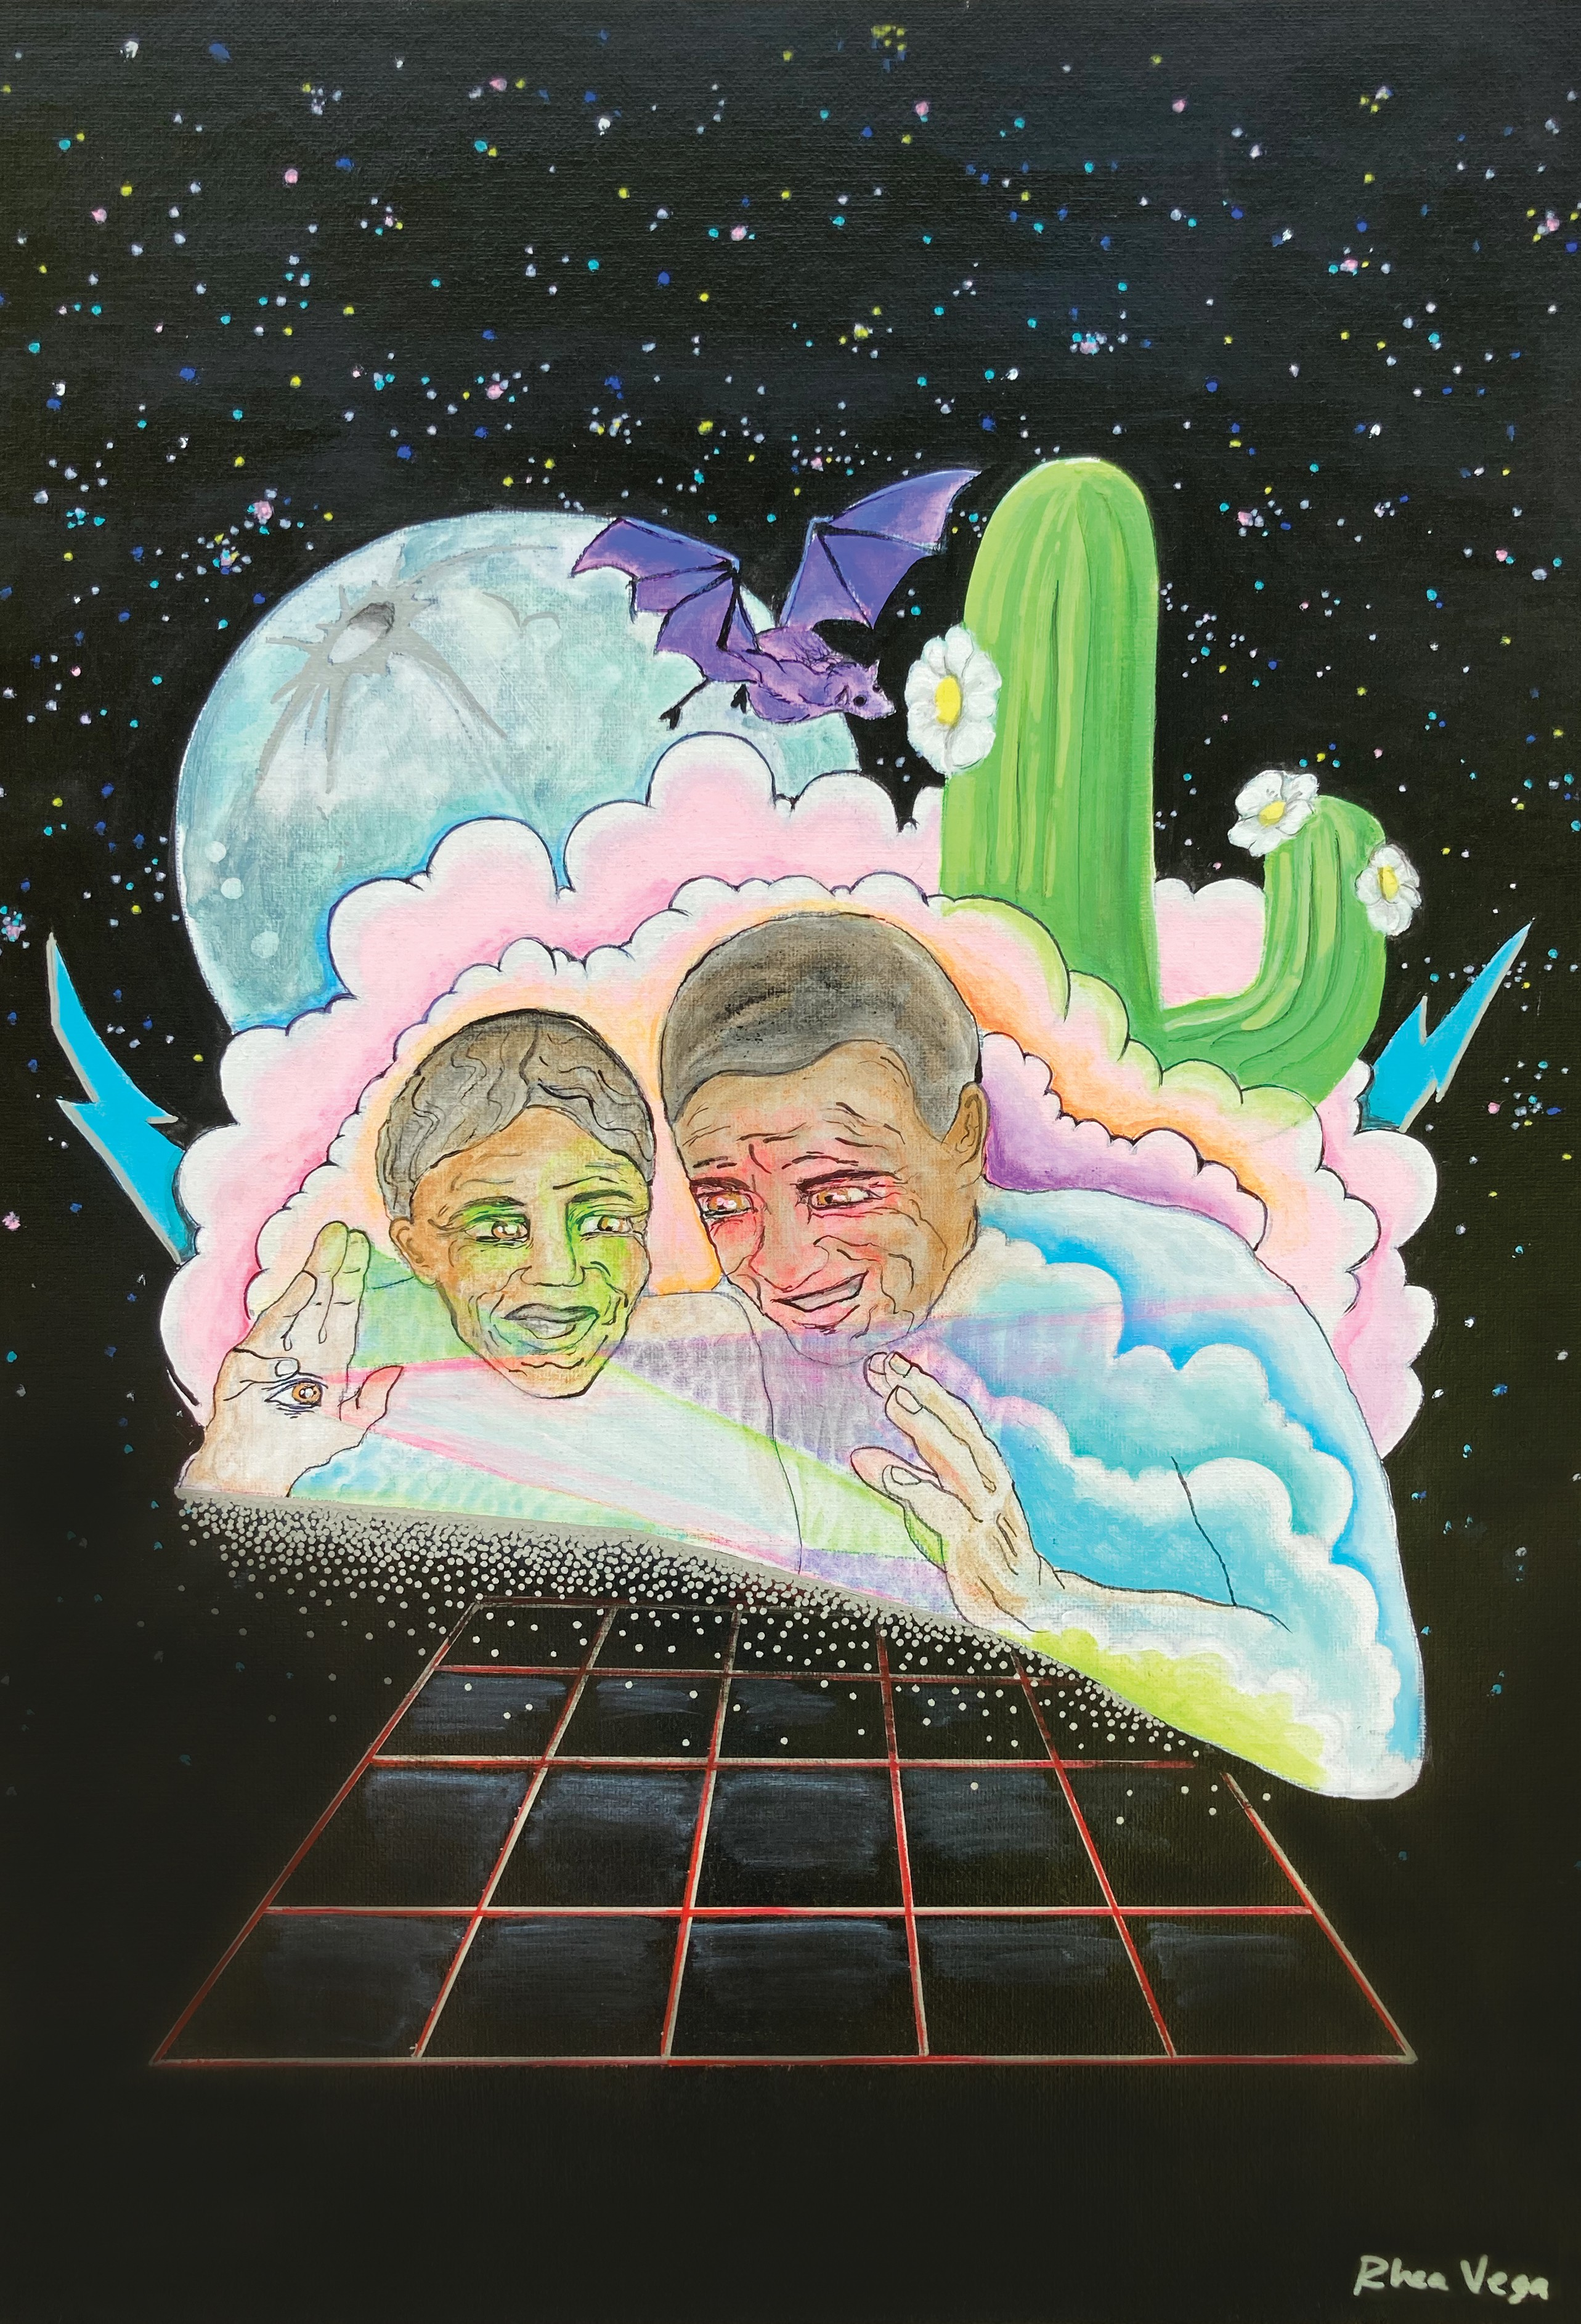 Illustration by Rhea Vega. Two older Black people face each other on a background of stars, clouds, and a flowering cactus. They appear to hover over a grid.